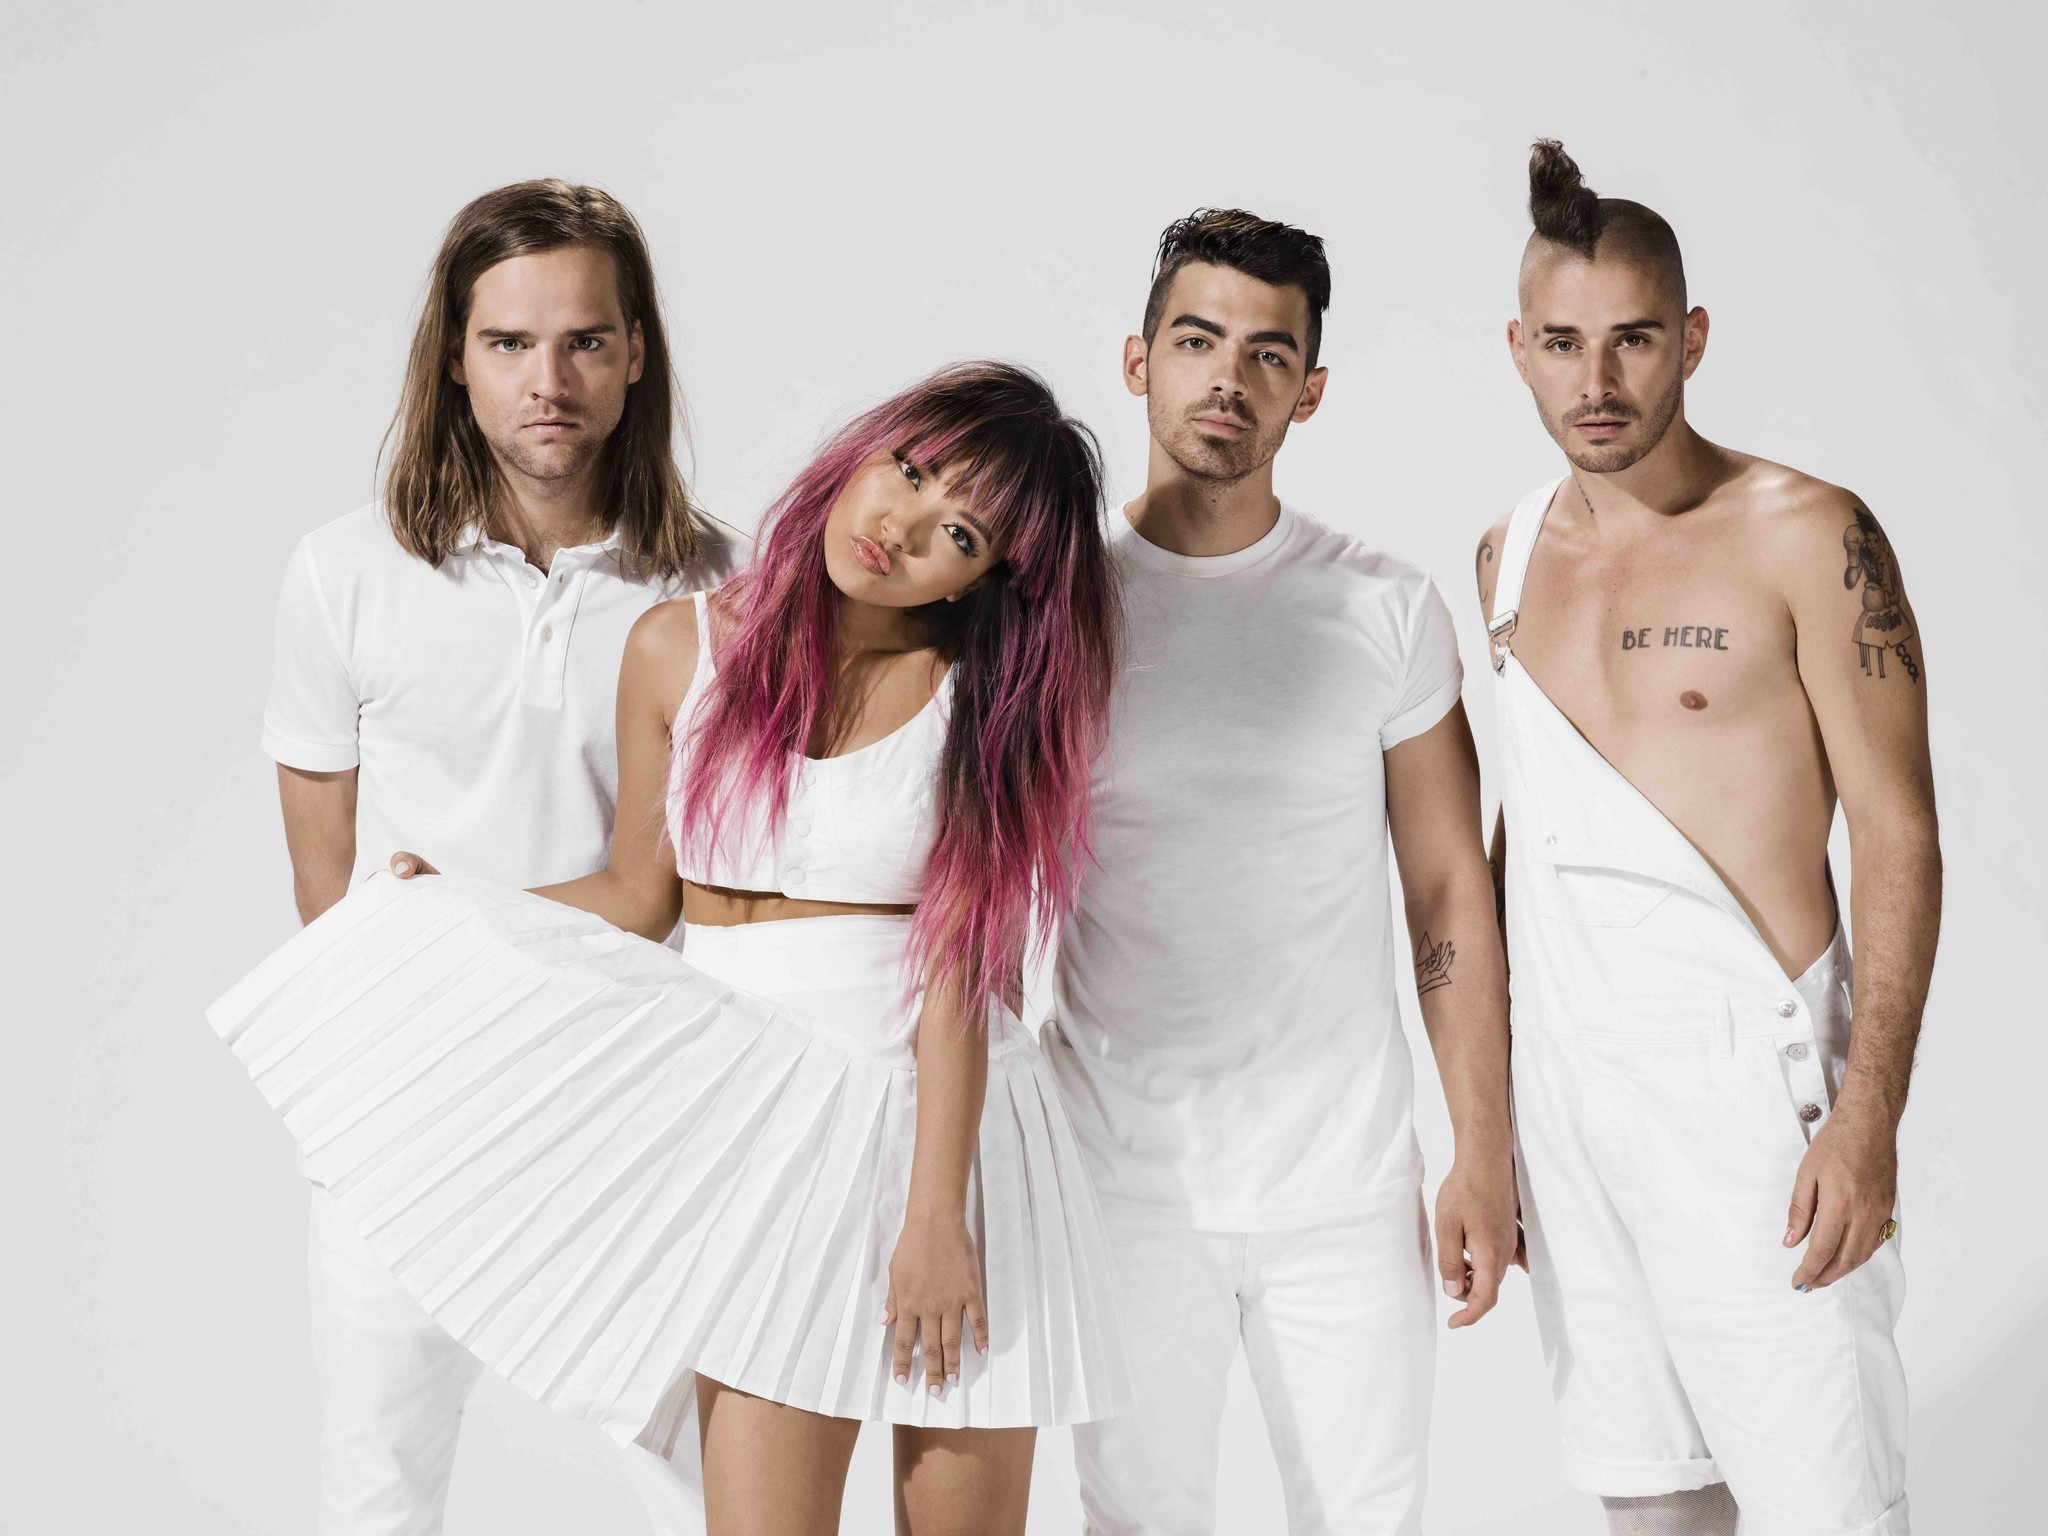 Hit funk-pop band DNCE to bring 'Cake by the Ocean' to ...